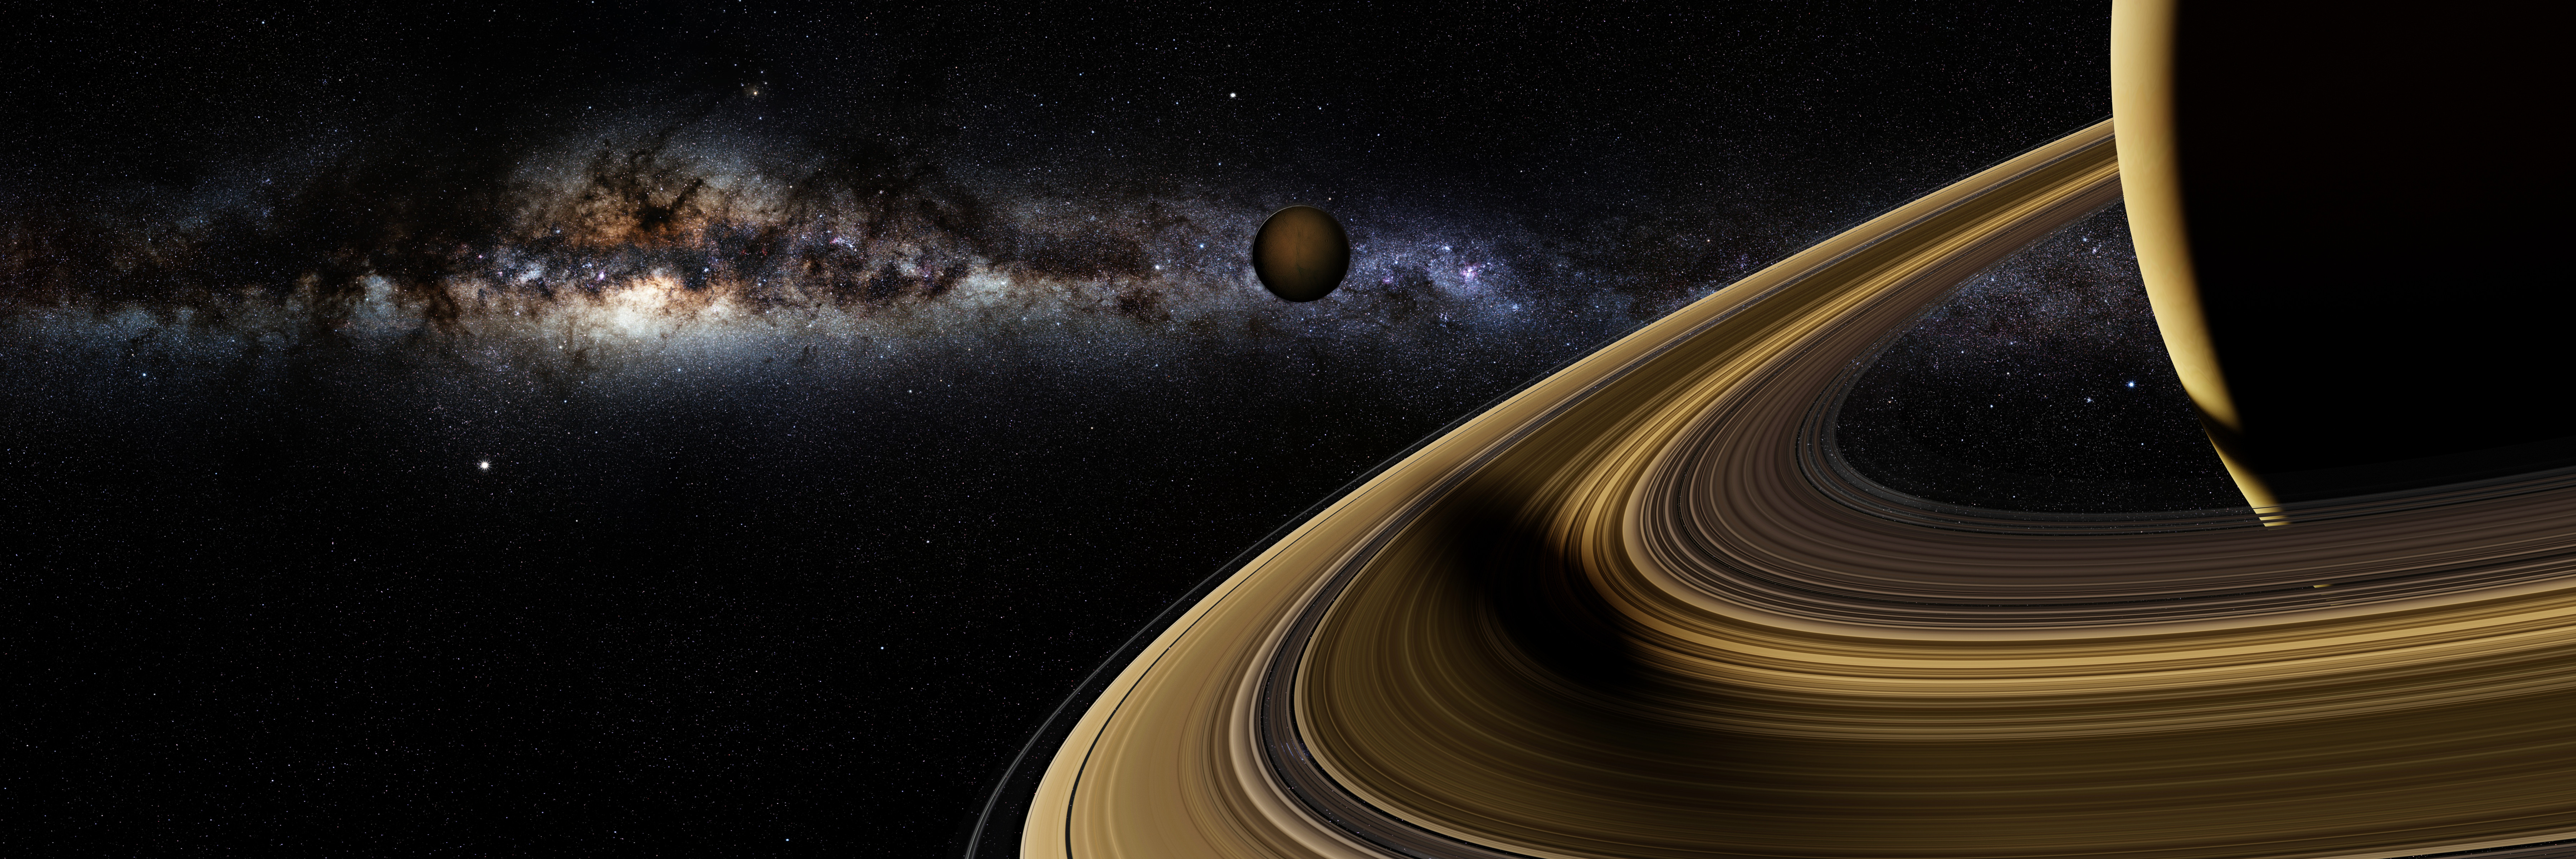 Physics Saturn Level 1 Activity For Kids